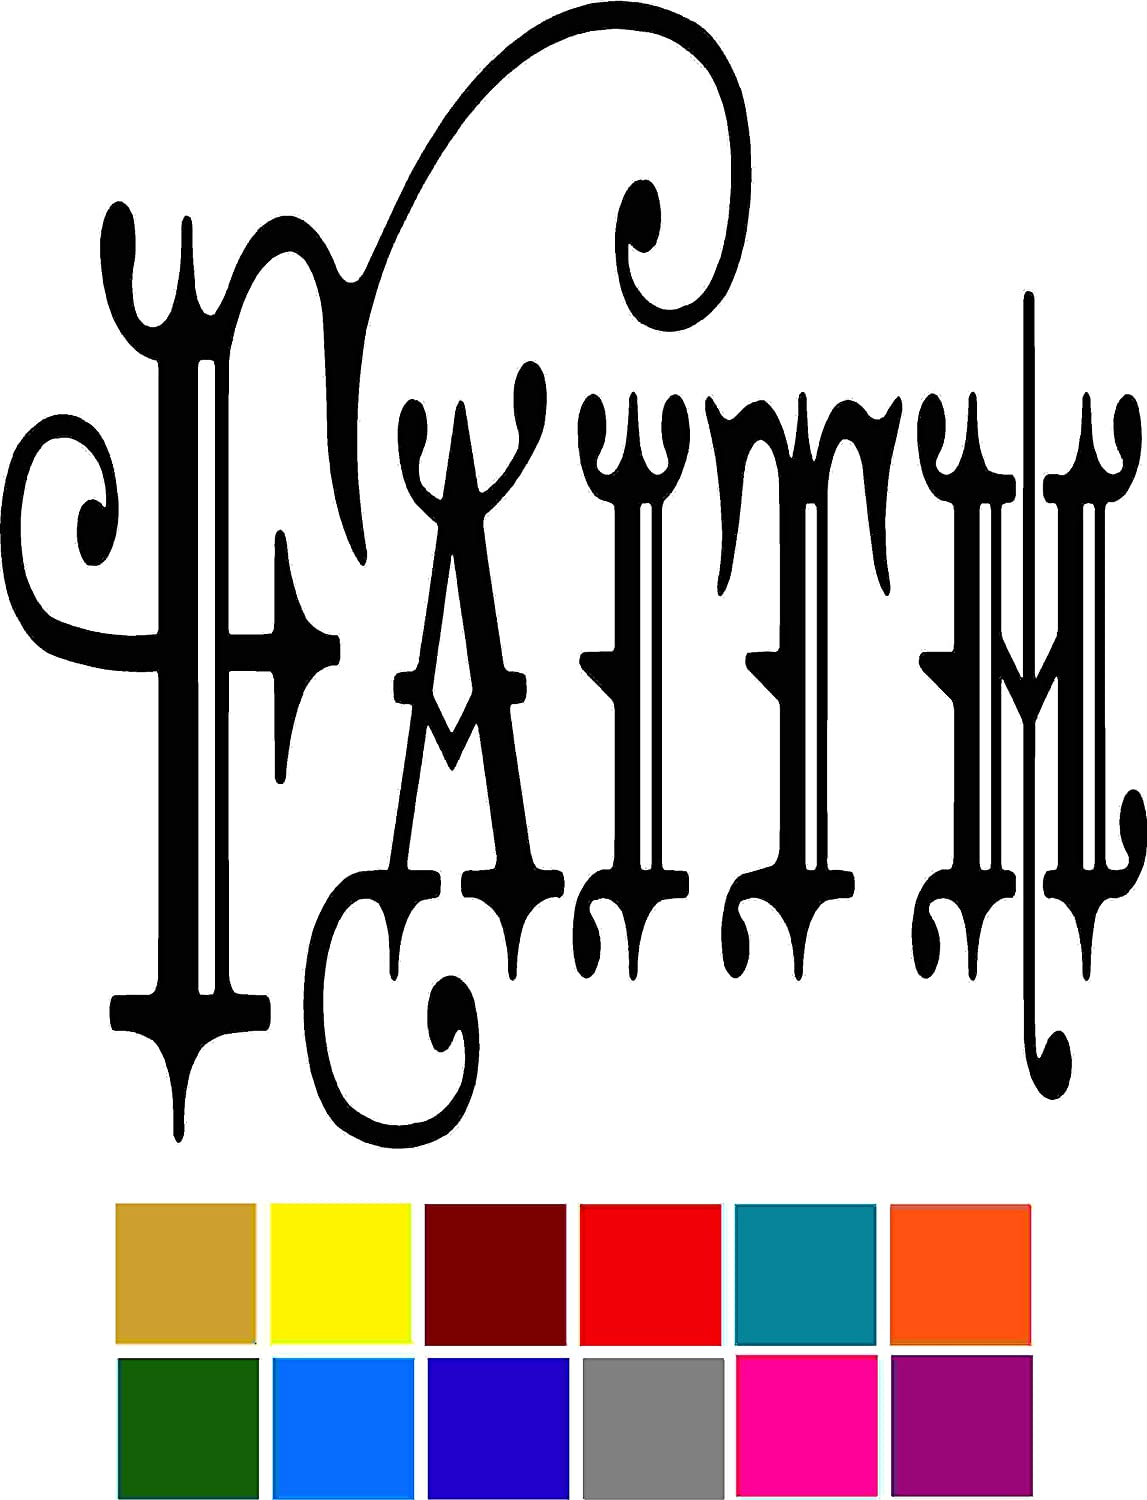 Faith Car Window Tumblers Wall Decal Sticker Vinyl Laptops Cellphones Phones Tablets Ipads Helmets Motorcycles Computer Towers V and T Gifts